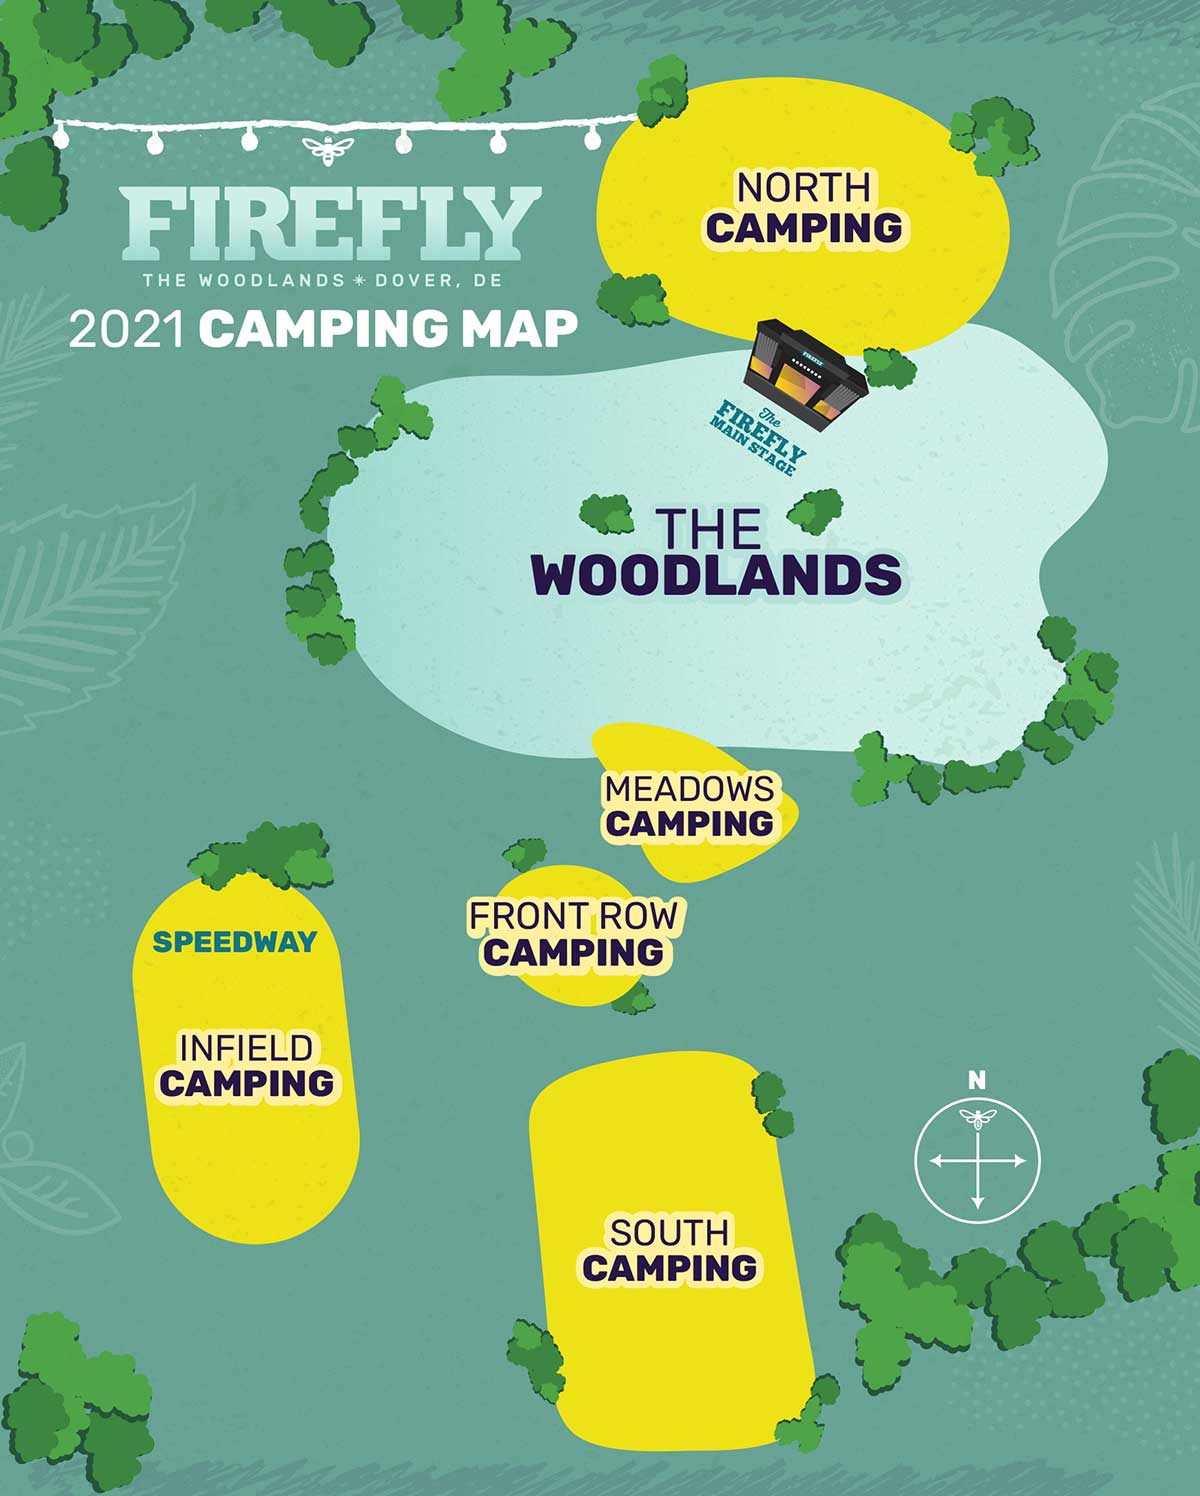 Firefly camping map